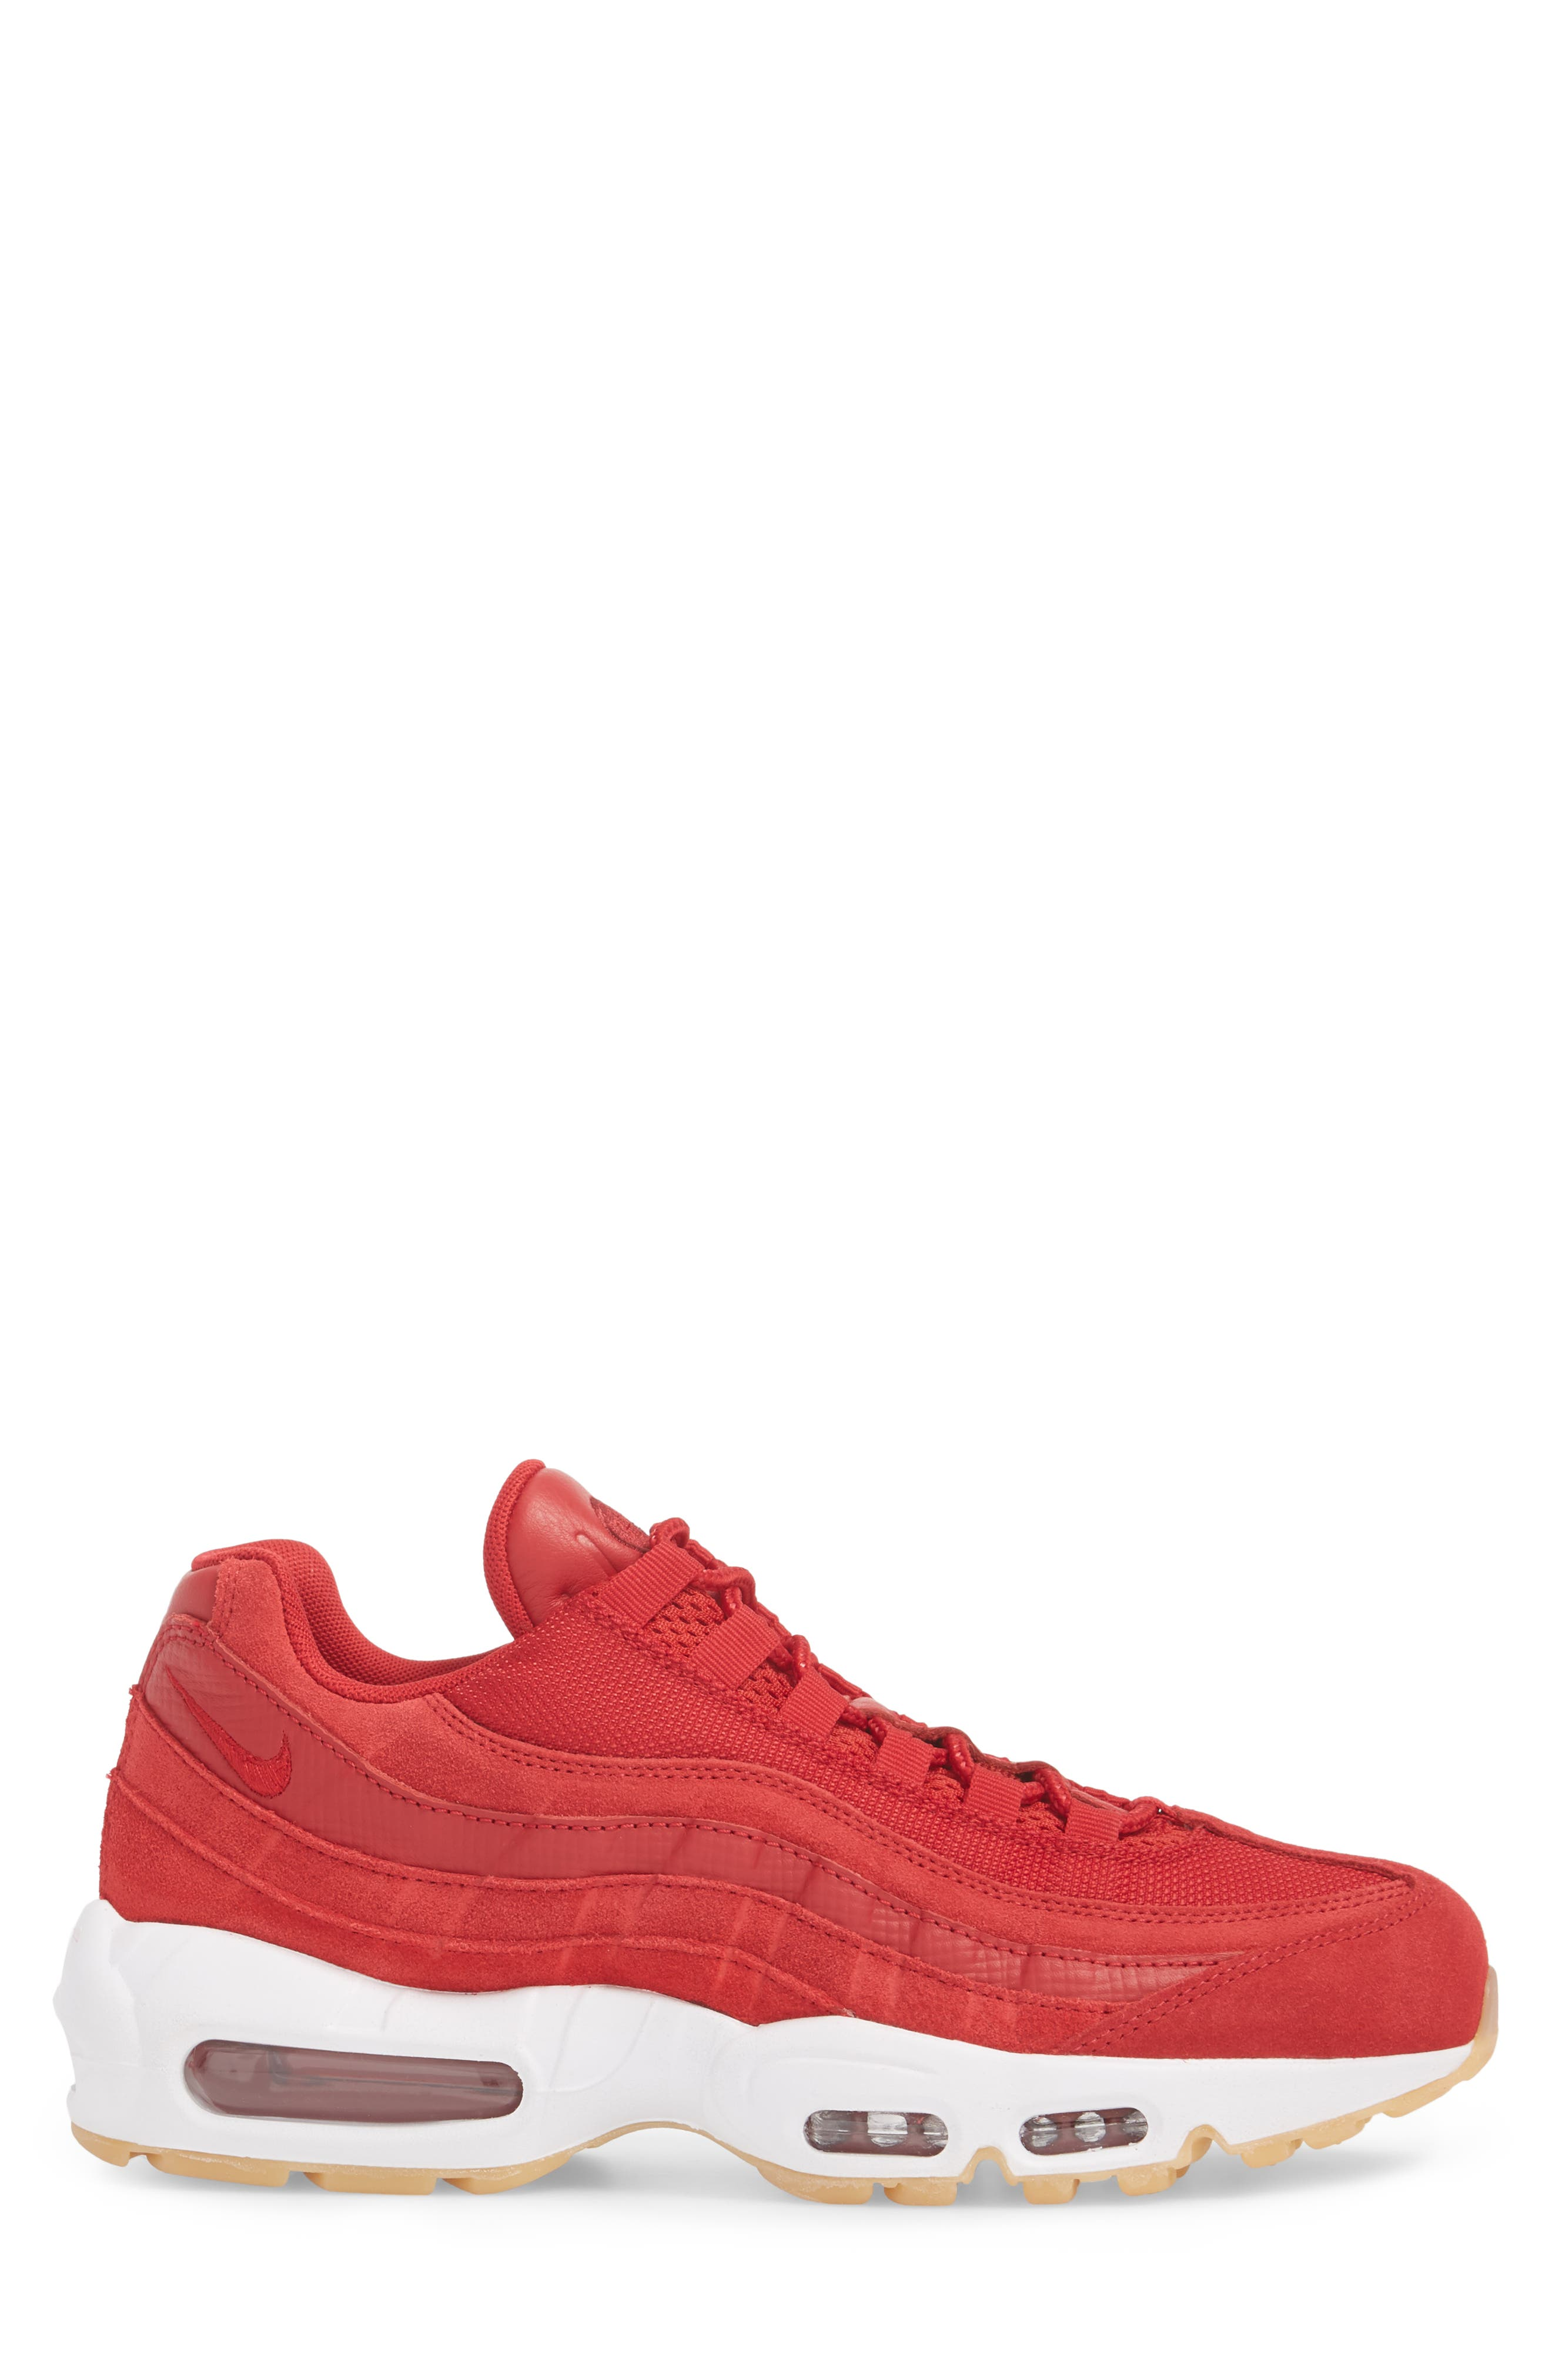 Air Max 95 Sneaker,                             Alternate thumbnail 3, color,                             GYM RED/ TEAM RED/ WHITE